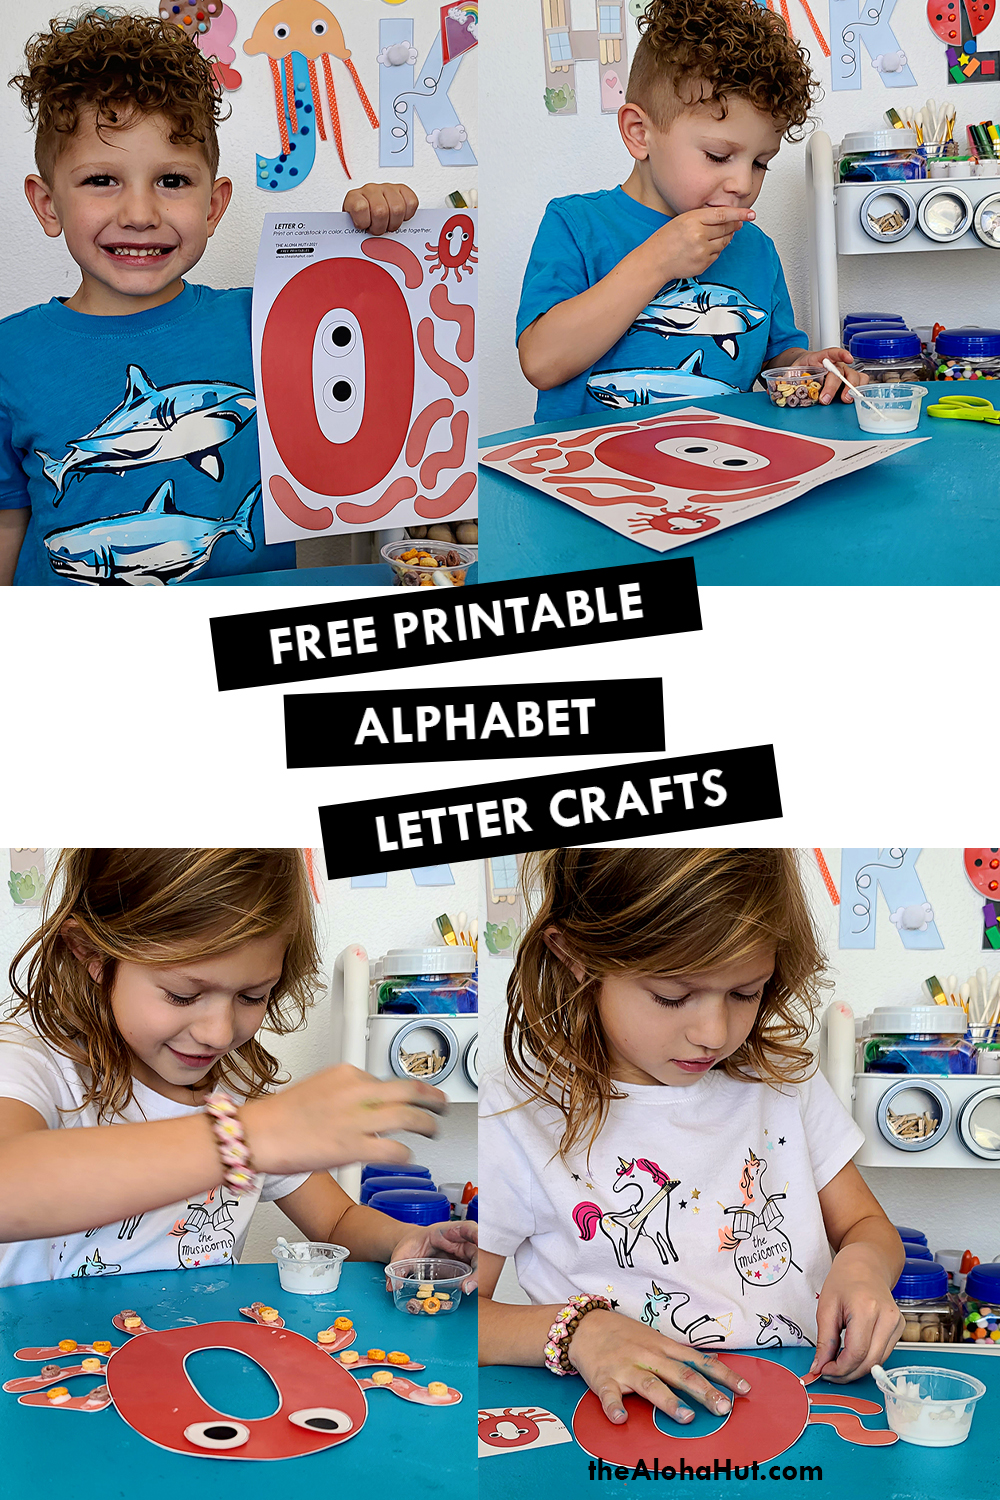 Alphabet Letter Crafts - Letters O - free printables 2 by the Aloha Hut